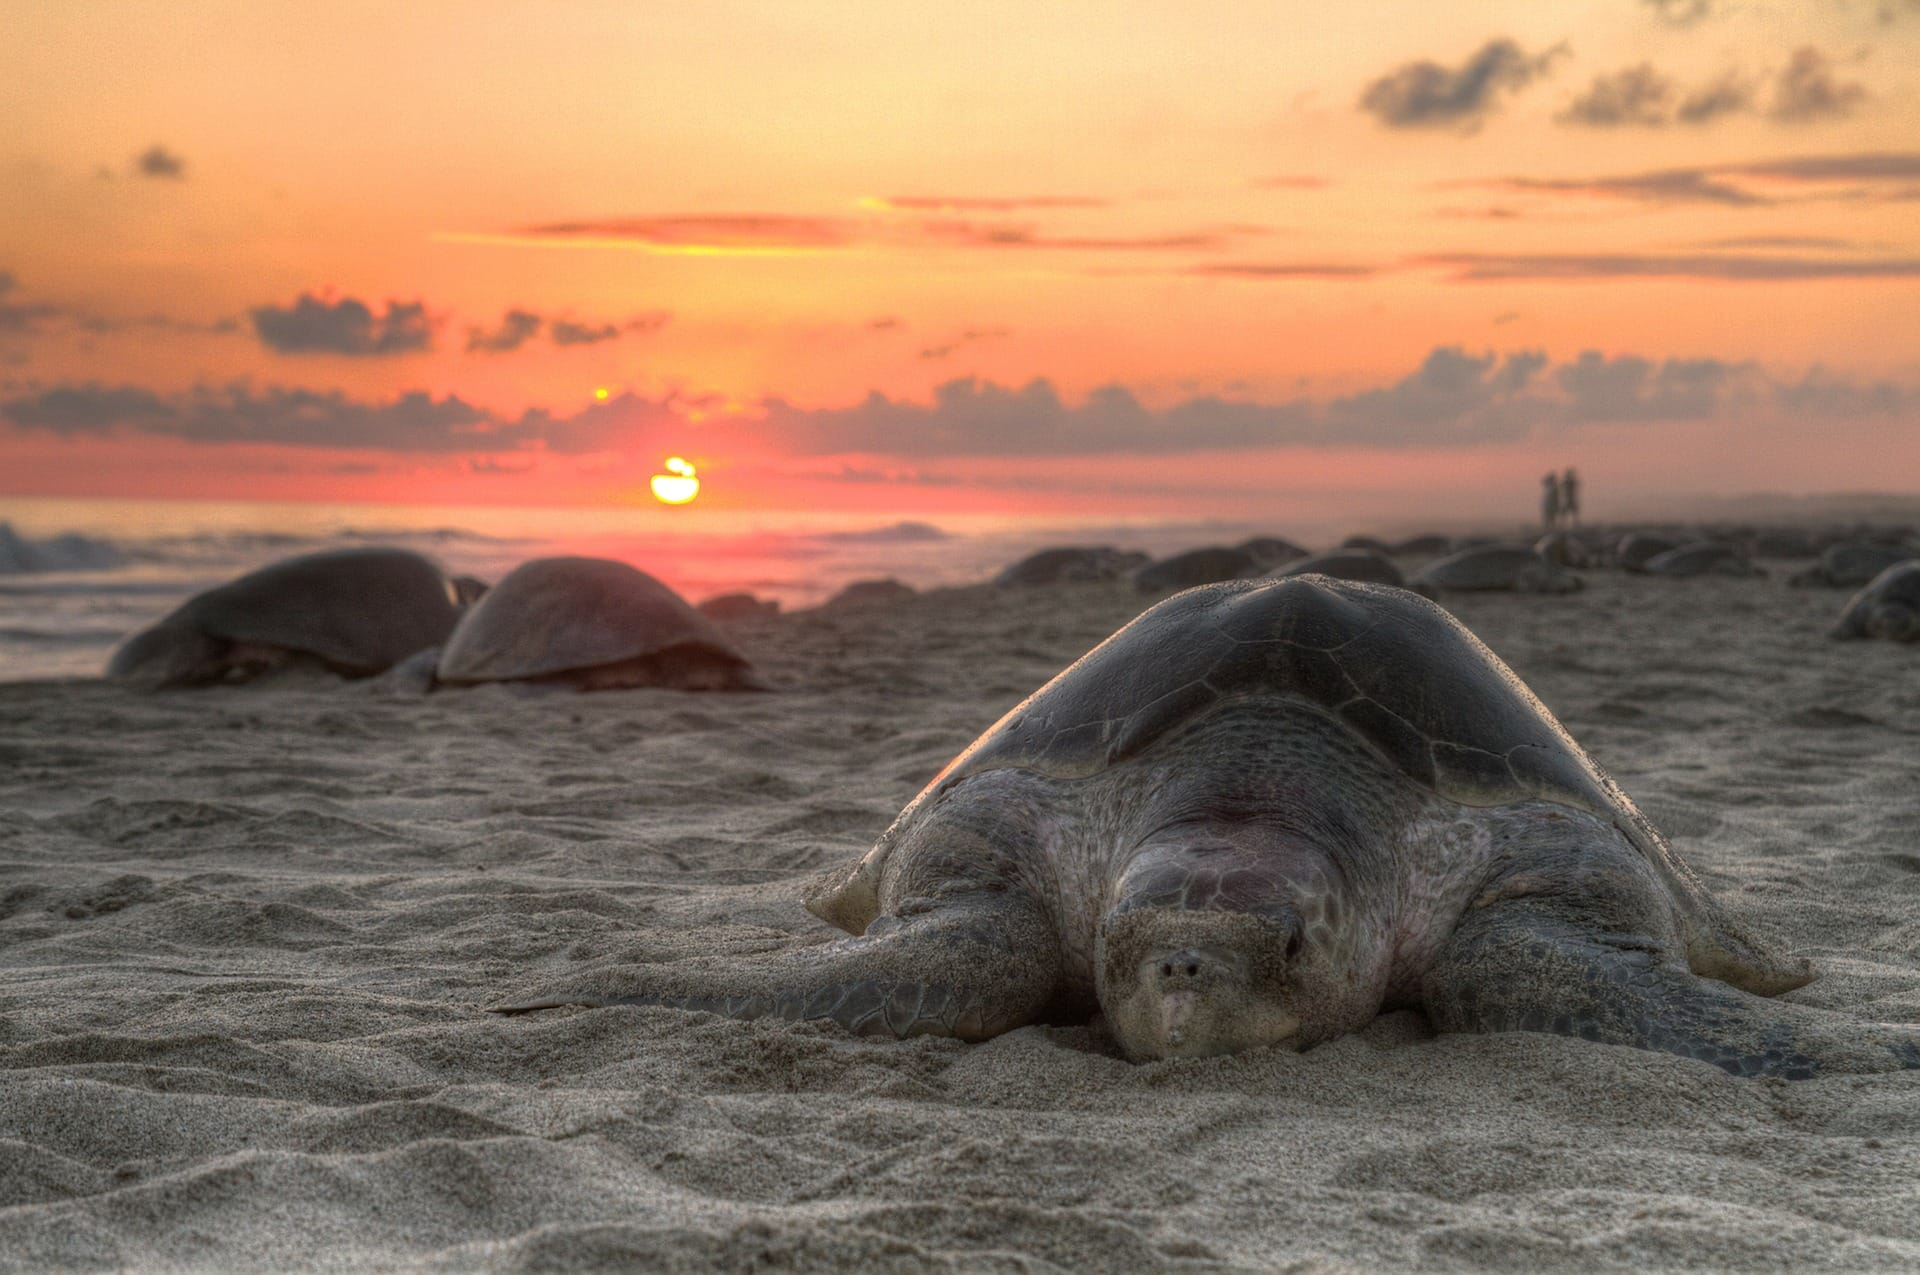 Sea turtles out on the beach during sunset